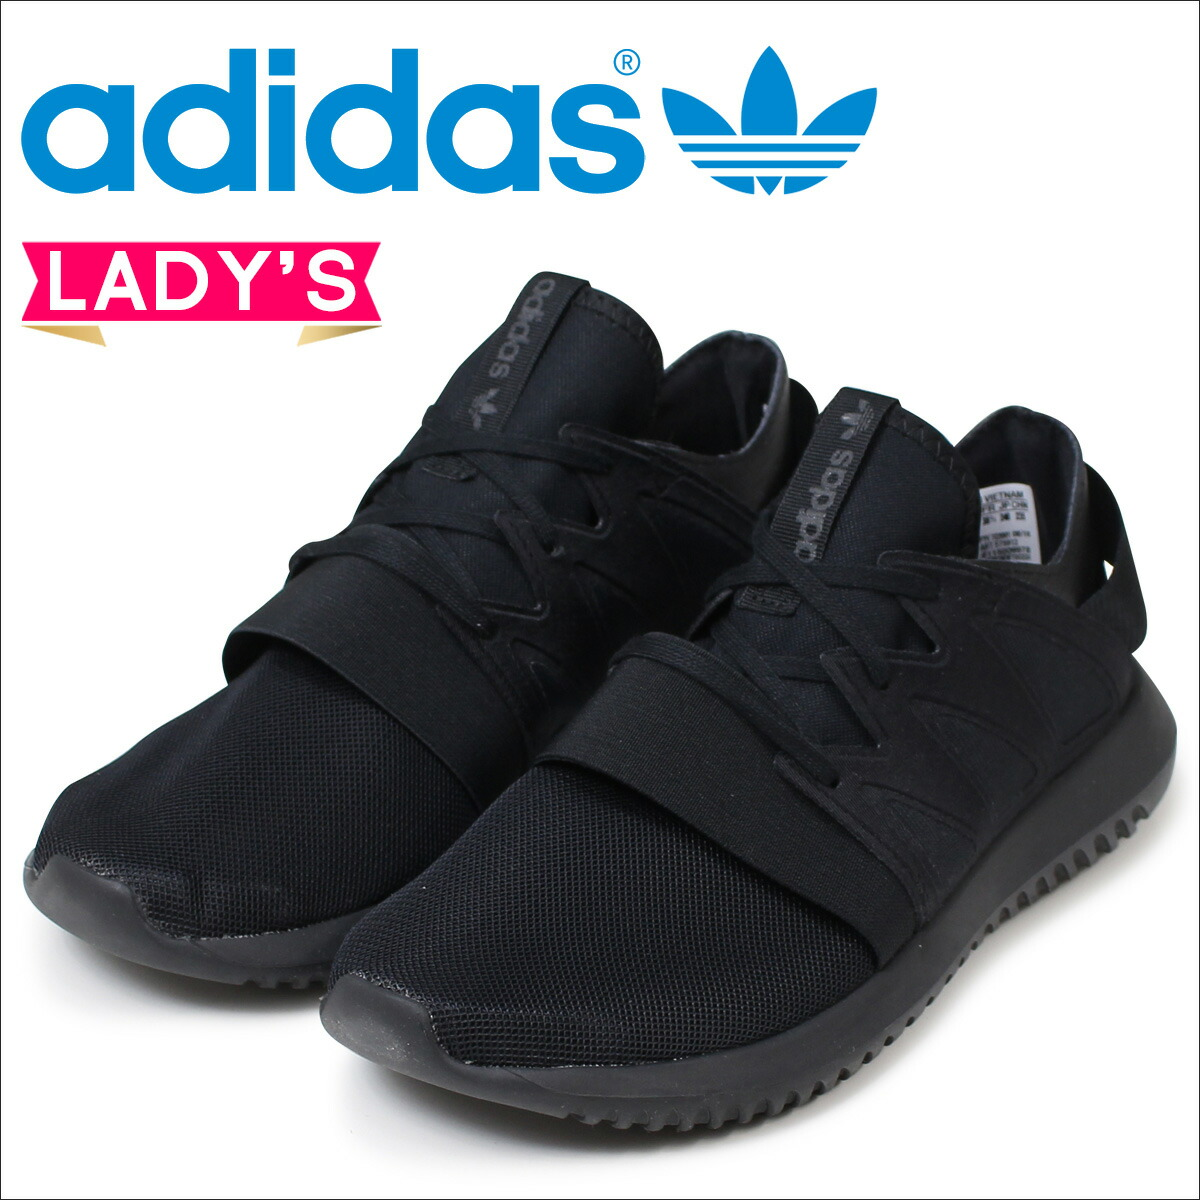 Adidas Tubular Viral Women's All Black